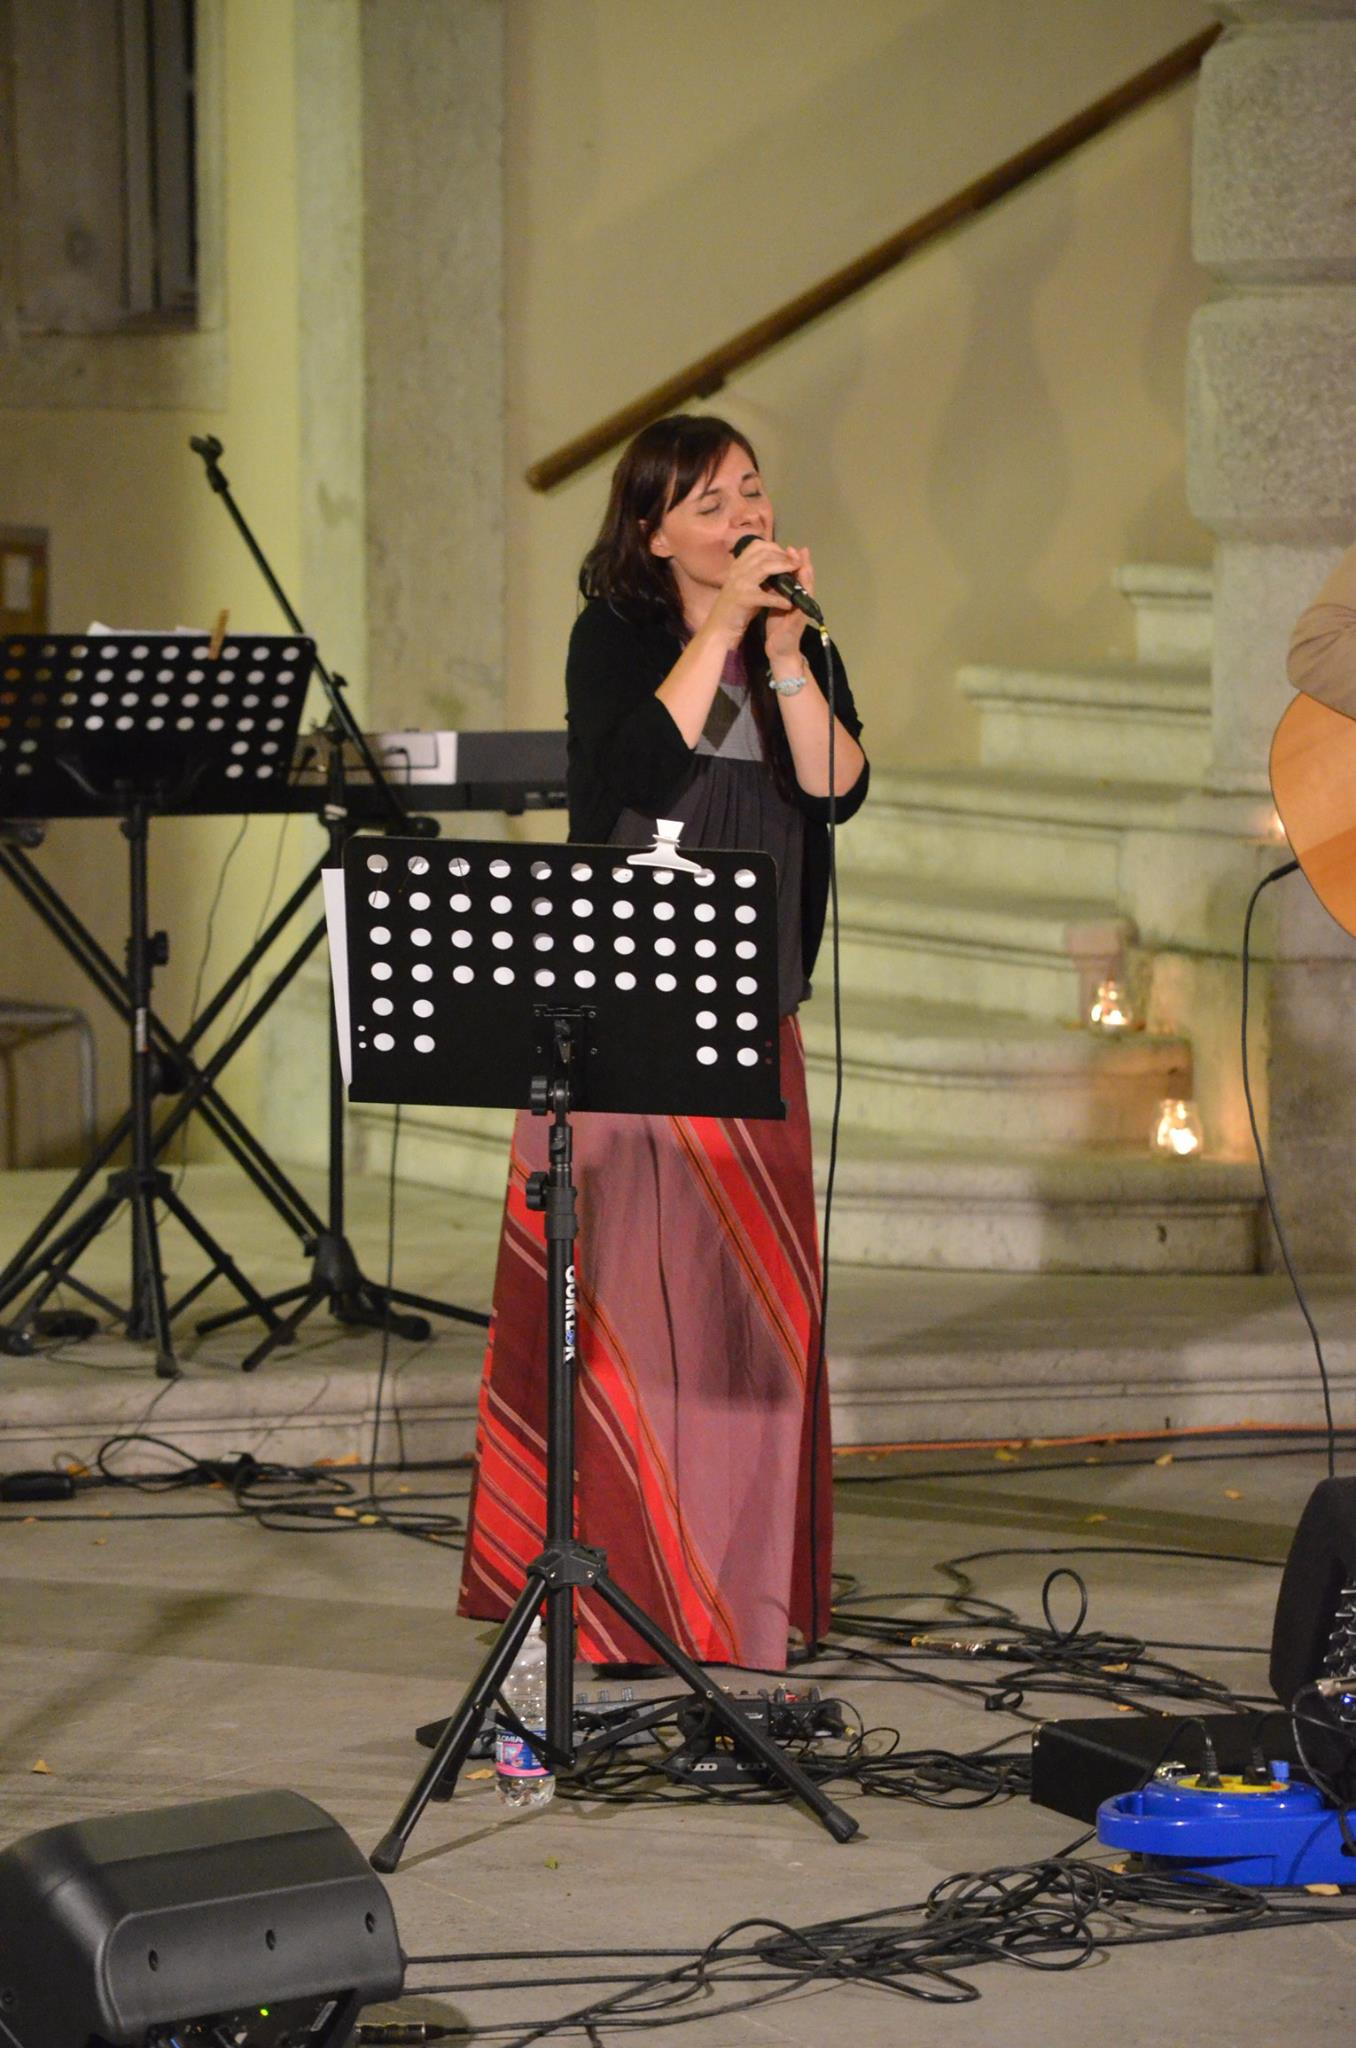 SPCM in tour_ data speciale a Gradisca D'Isonzo